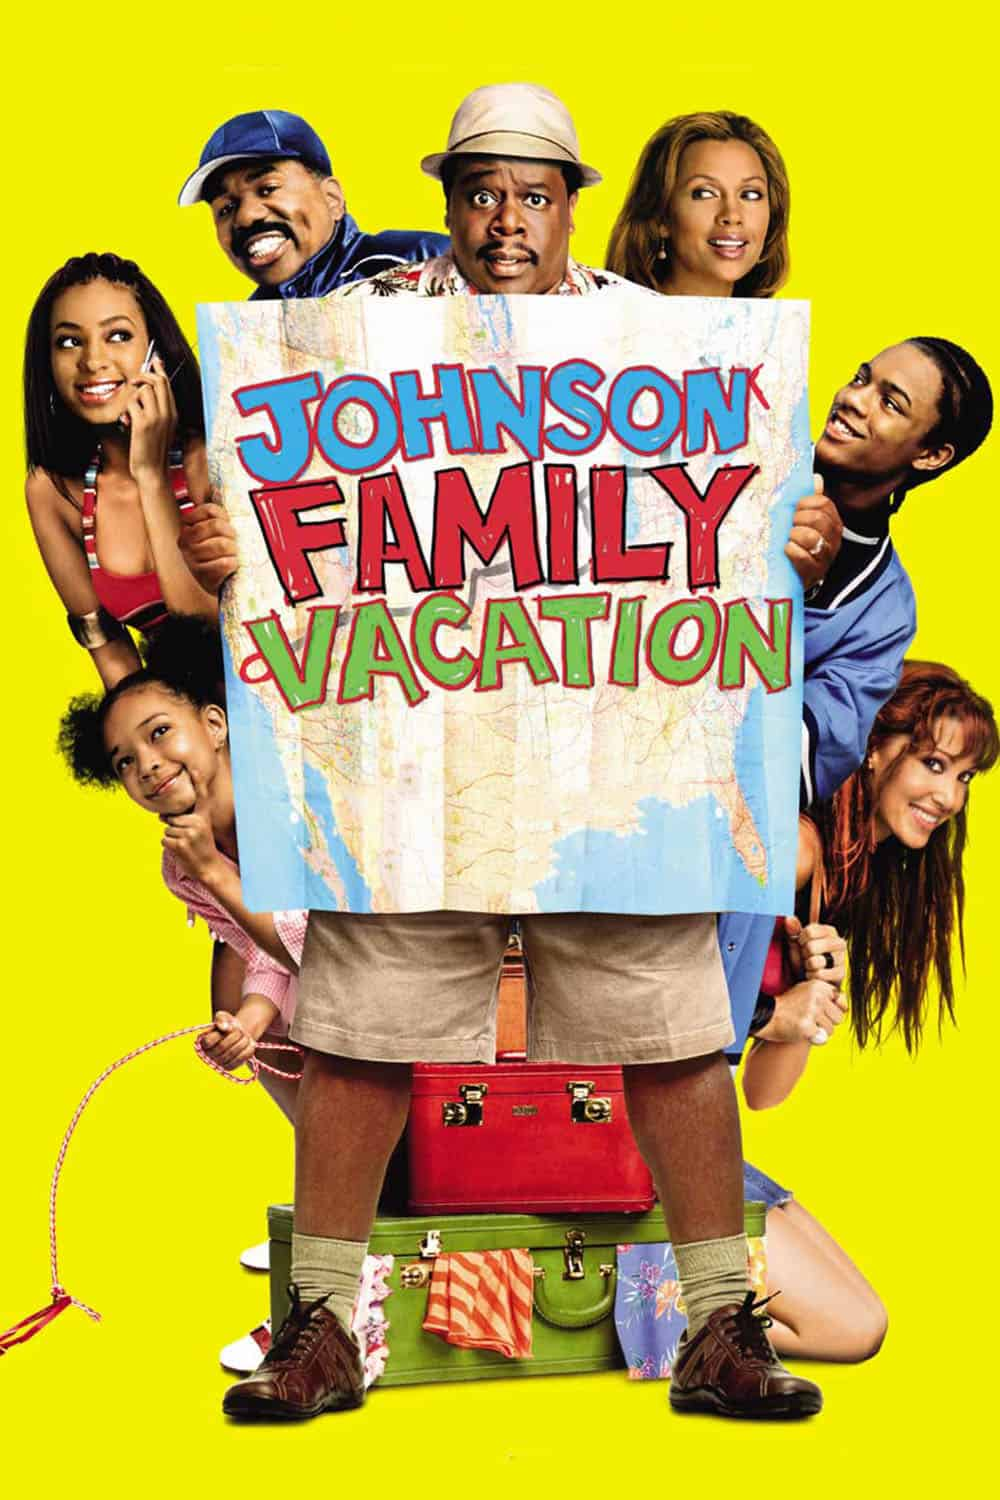 Johnson Family Vacation, 2004